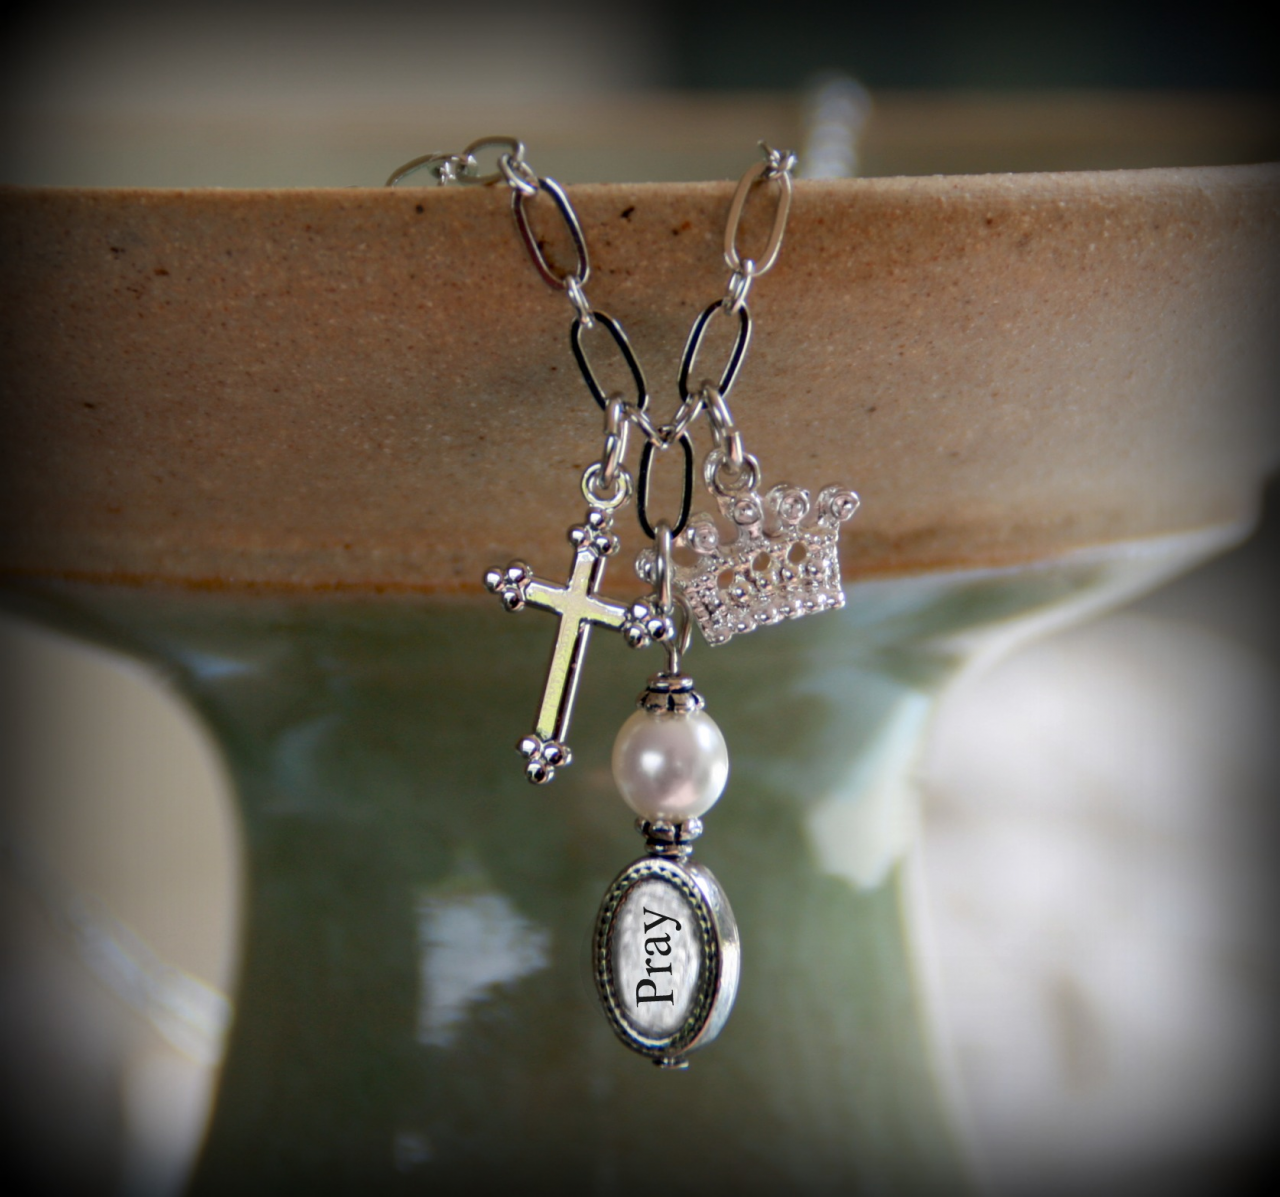 IN-493 Pray Charm necklace with Crown